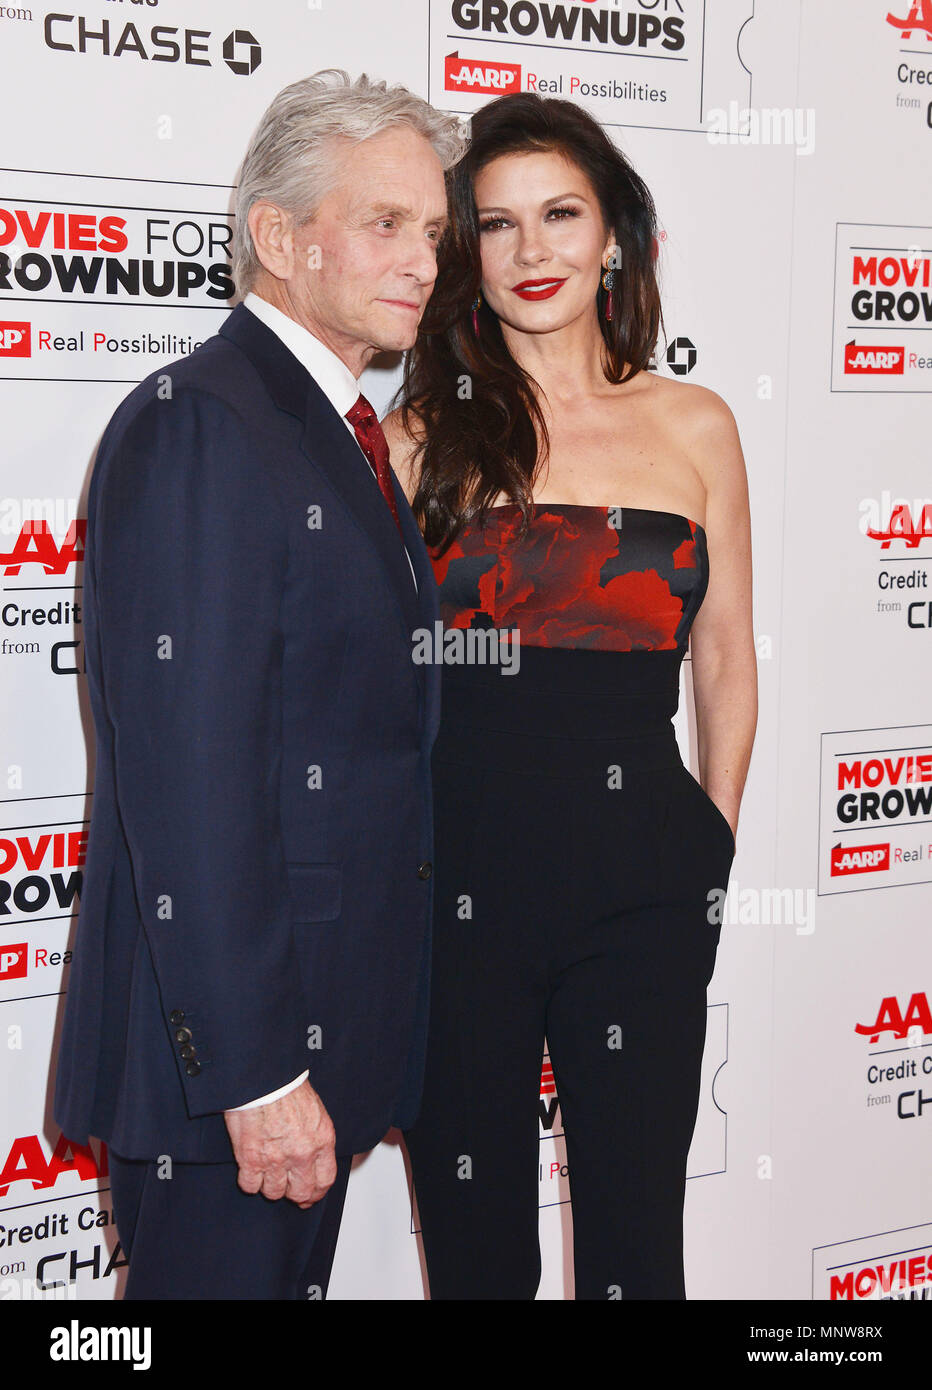 a_Michael Douglas, Catherine Zeta Jones 006 at the Movies For Grow Ups - AARP - at the Beverly Wilshire Hotel in Los Angeles. February 8, 2016.a_Michael Douglas, Catherine Zeta Jones 006 ------------- Red Carpet Event, Vertical, USA, Film Industry, Celebrities,  Photography, Bestof, Arts Culture and Entertainment, Topix Celebrities fashion /  Vertical, Best of, Event in Hollywood Life - California,  Red Carpet and backstage, USA, Film Industry, Celebrities,  movie celebrities, TV celebrities, Music celebrities, Photography, Bestof, Arts Culture and Entertainment,  Topix, vertical,  family from - Stock Image